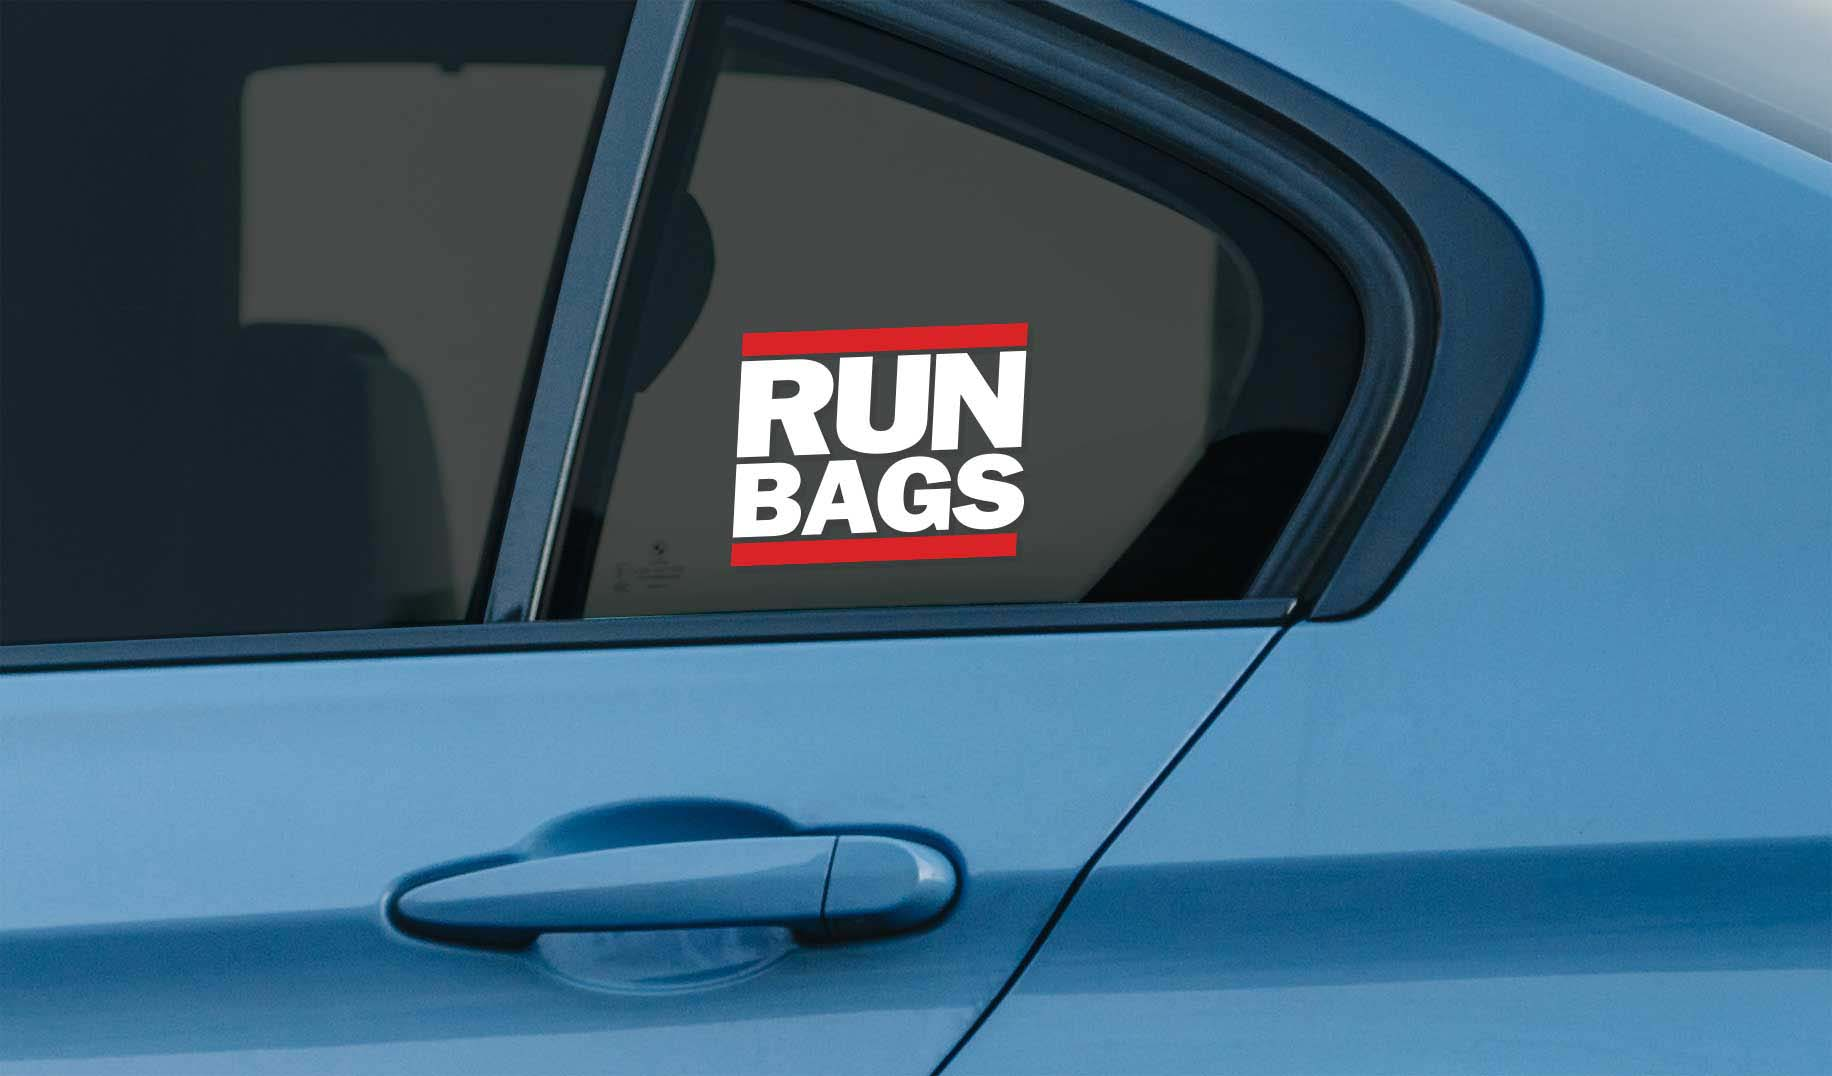 Run Bags window vinyl sticker for stanced lowered cars on air suspension